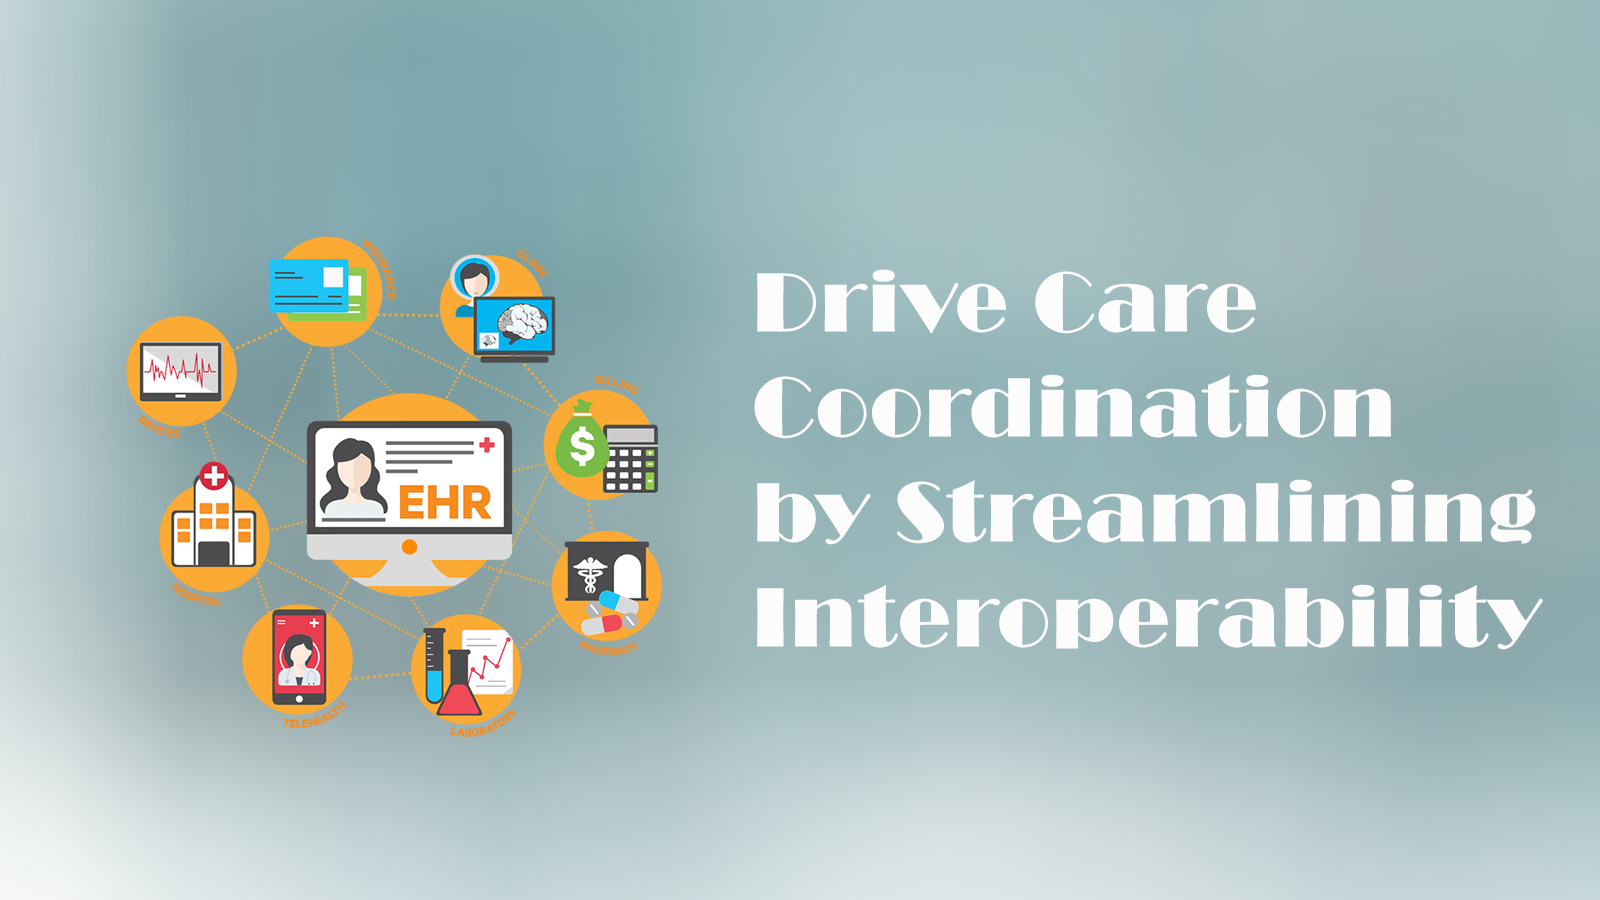 Drive Care Coordination by Streamlining Interoperability